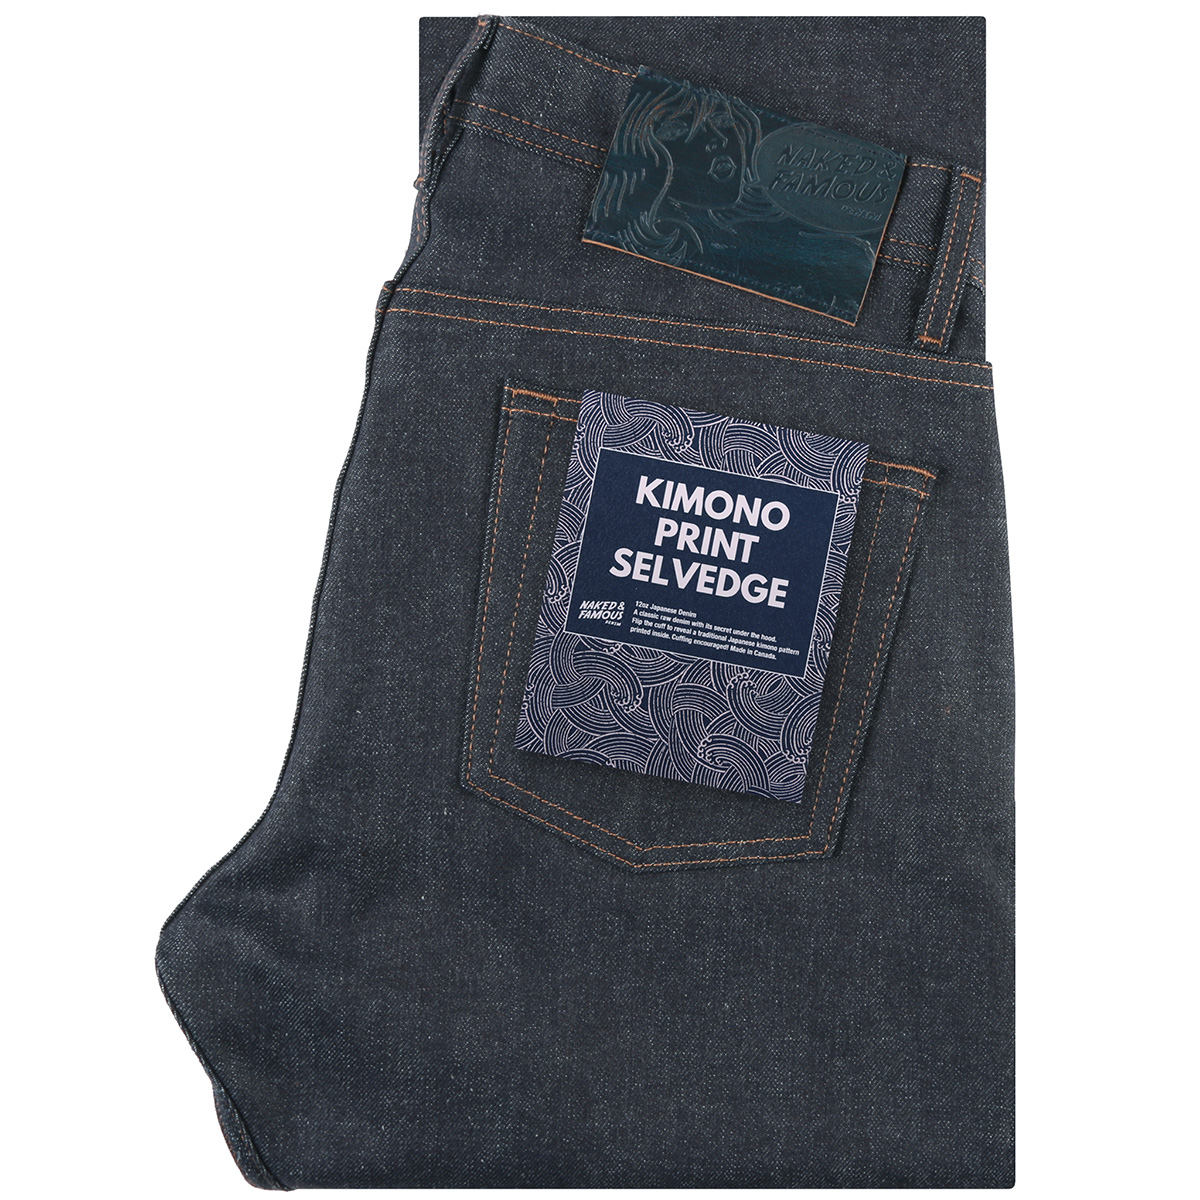 KIMONO PRINT selvedge - Super Guy / Weird Guy / Easy Guy